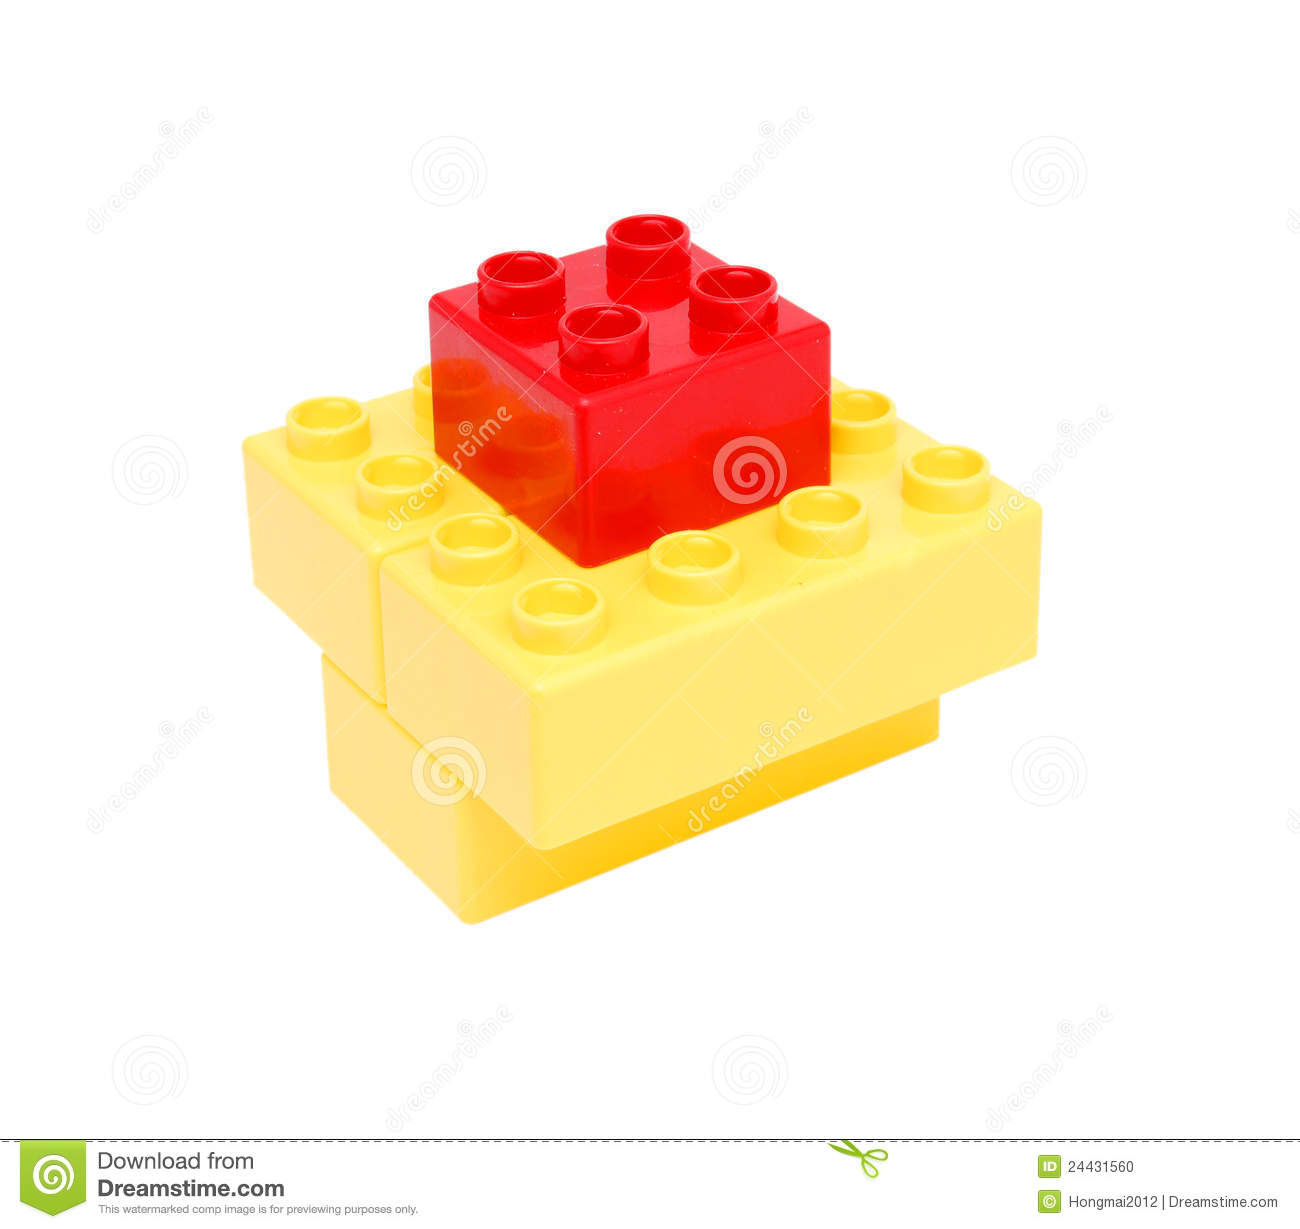 Plastic building blocks stock photo image 24431560 for Plastic building blocks home construction